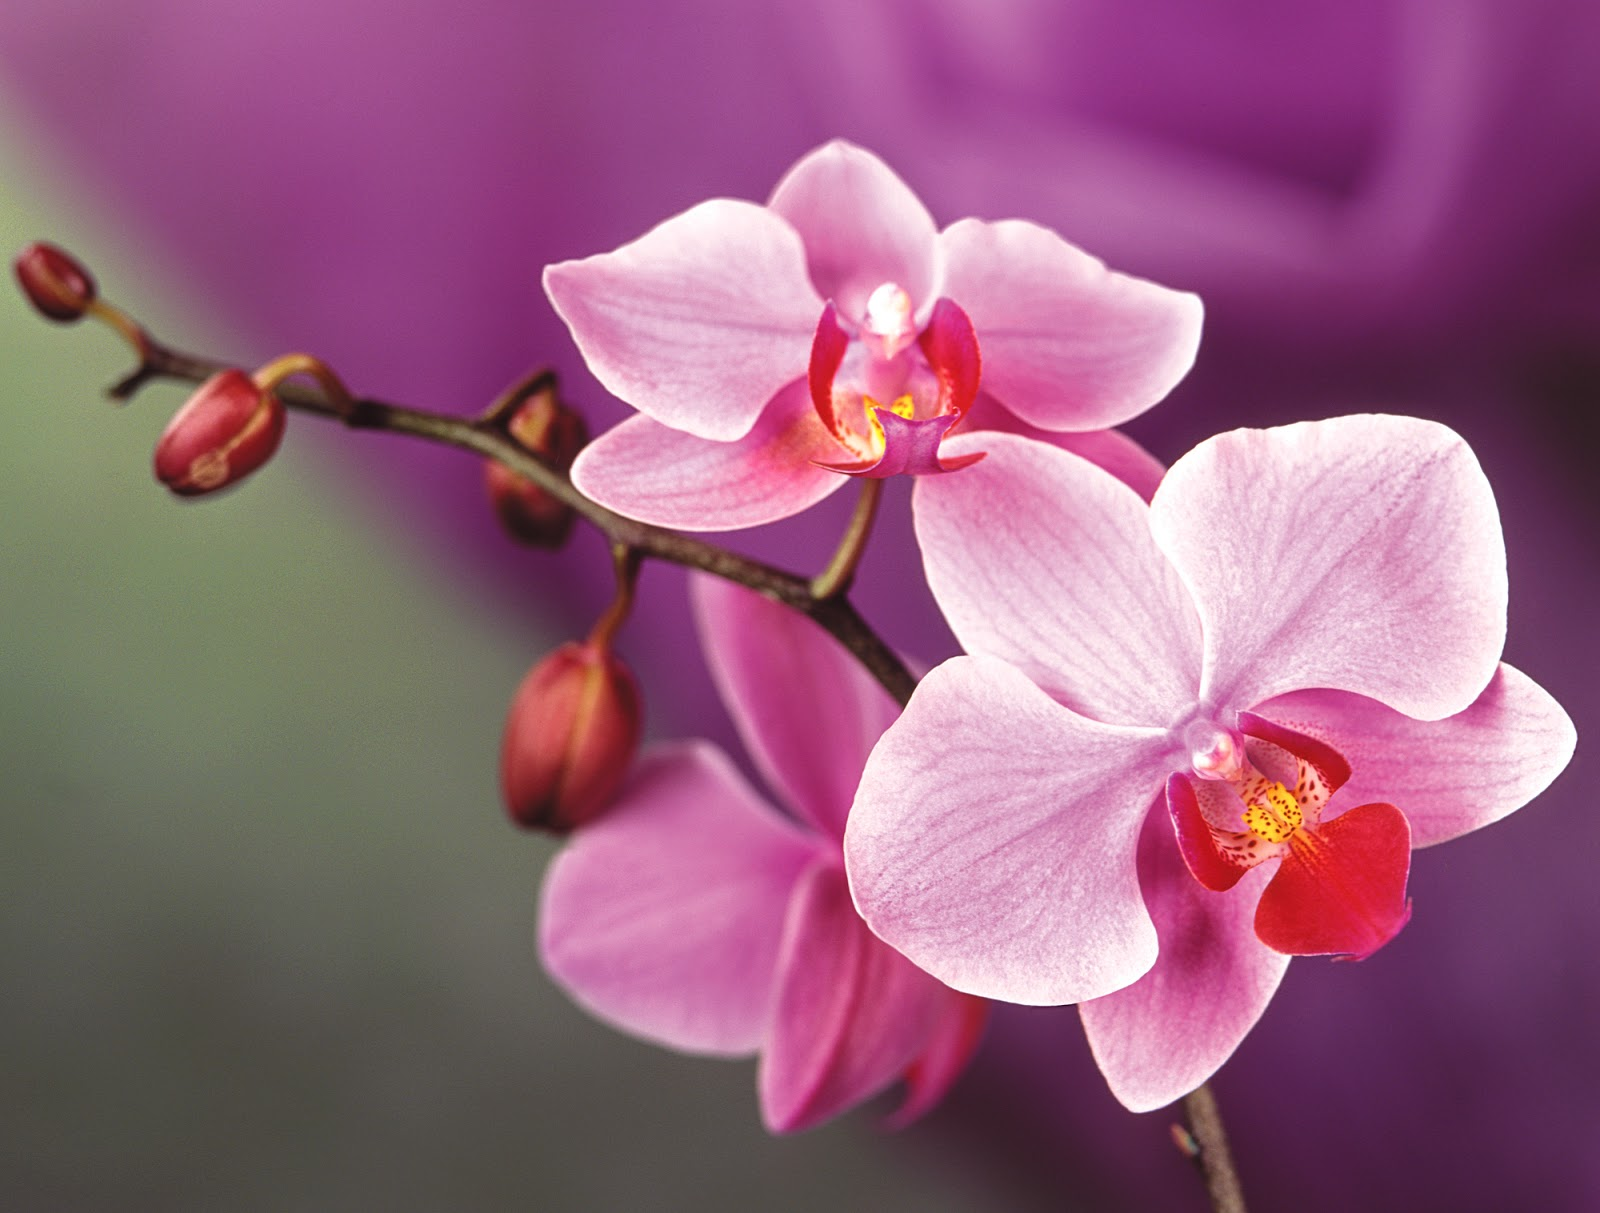 Orchid Flower image HD Wallpaper Stock Photos Free Download